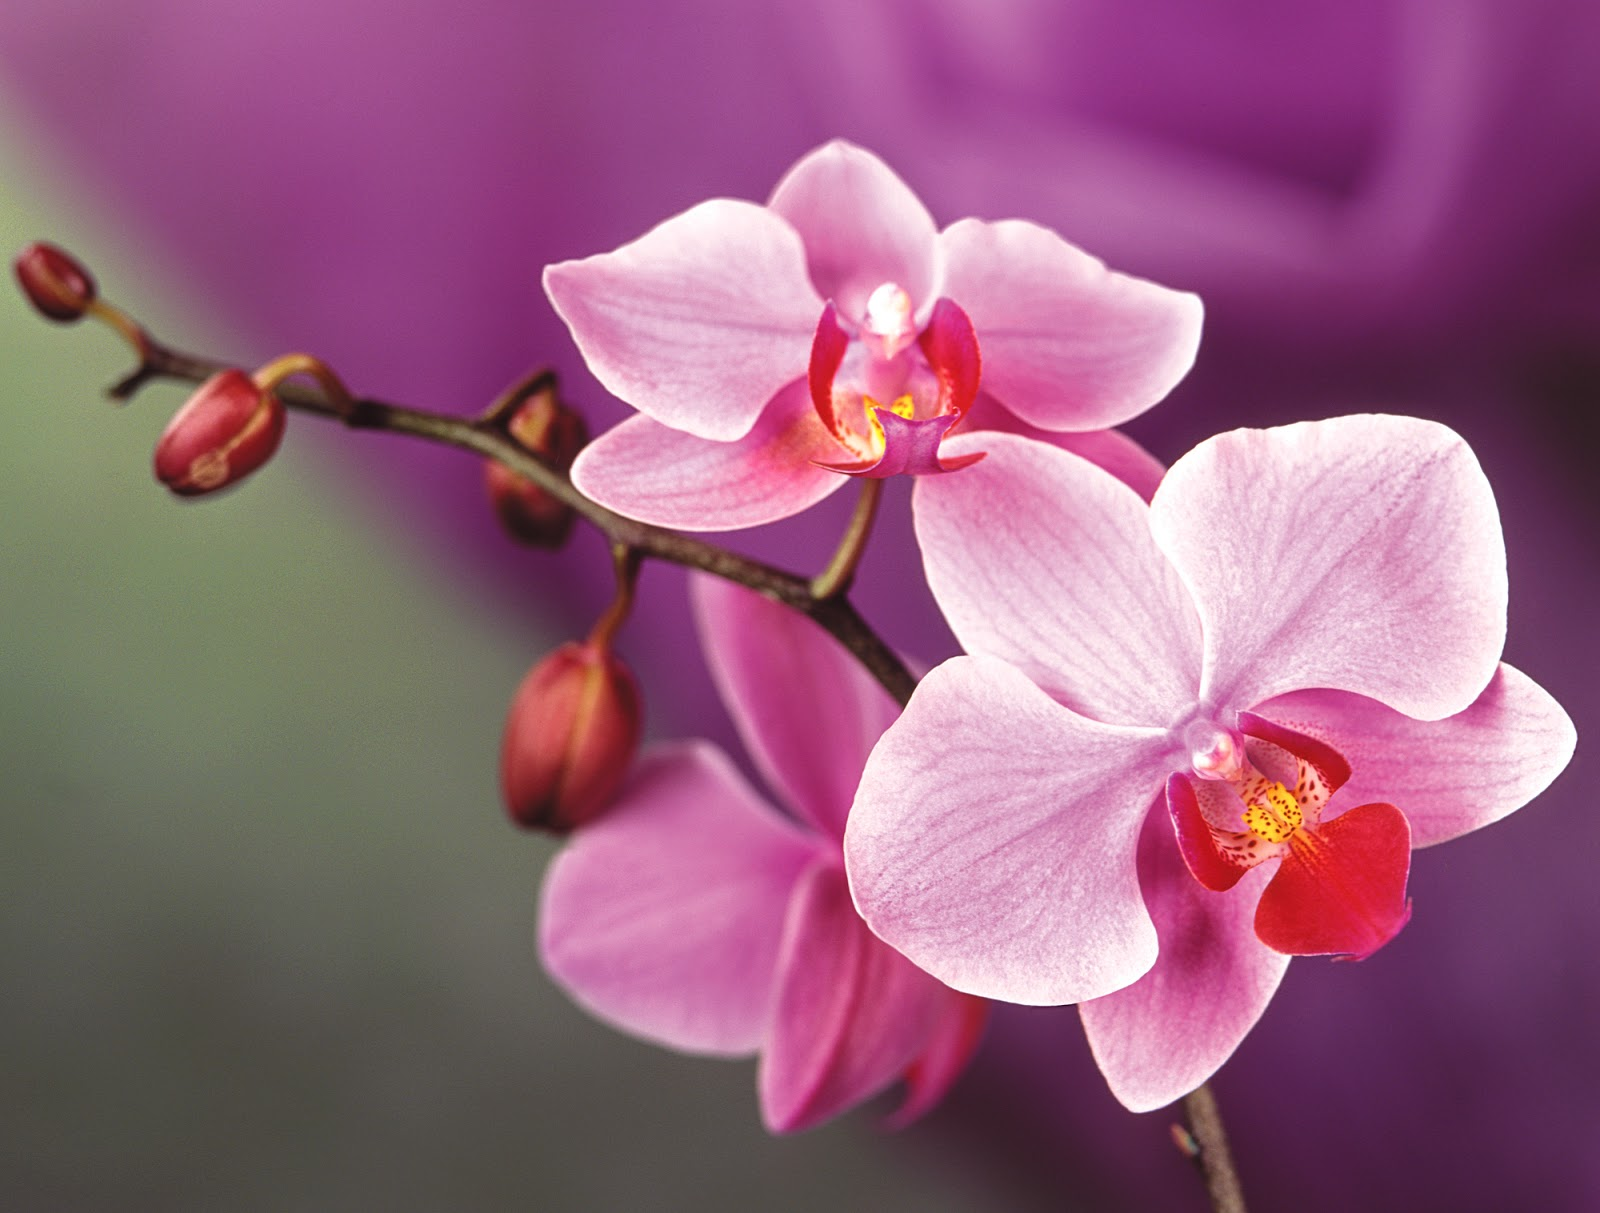 Orchid Flower image HD Wallpaper Stock Photos Free Download